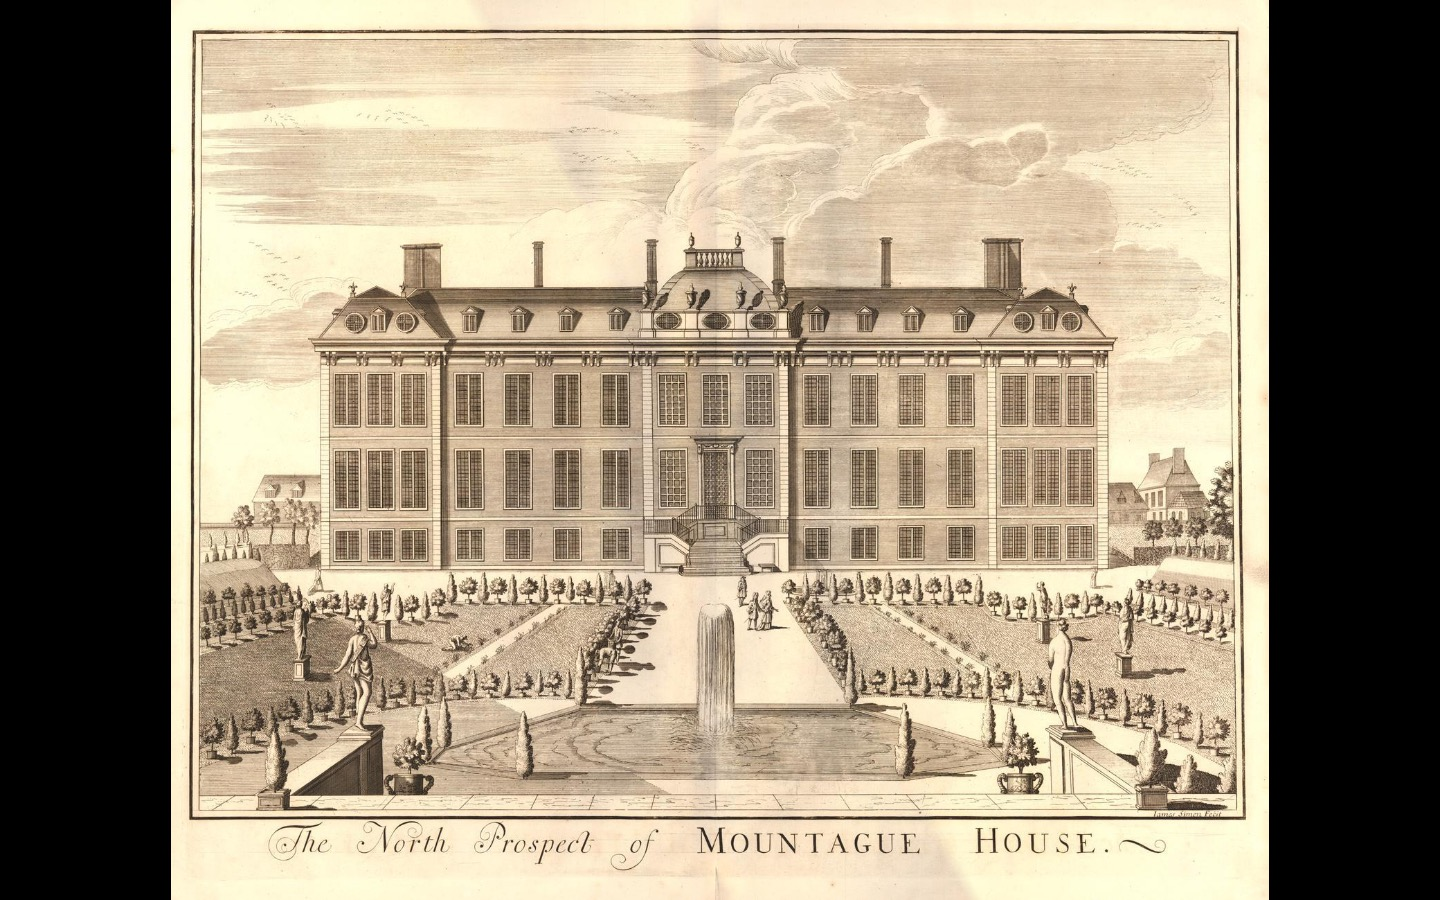 Photo of an old etching and engraving of the north prospect of Montagu House, a large mansion with a mansard roof and three storeys. In front of the mansion is a large, traditional English garden with pavements, trees and statues